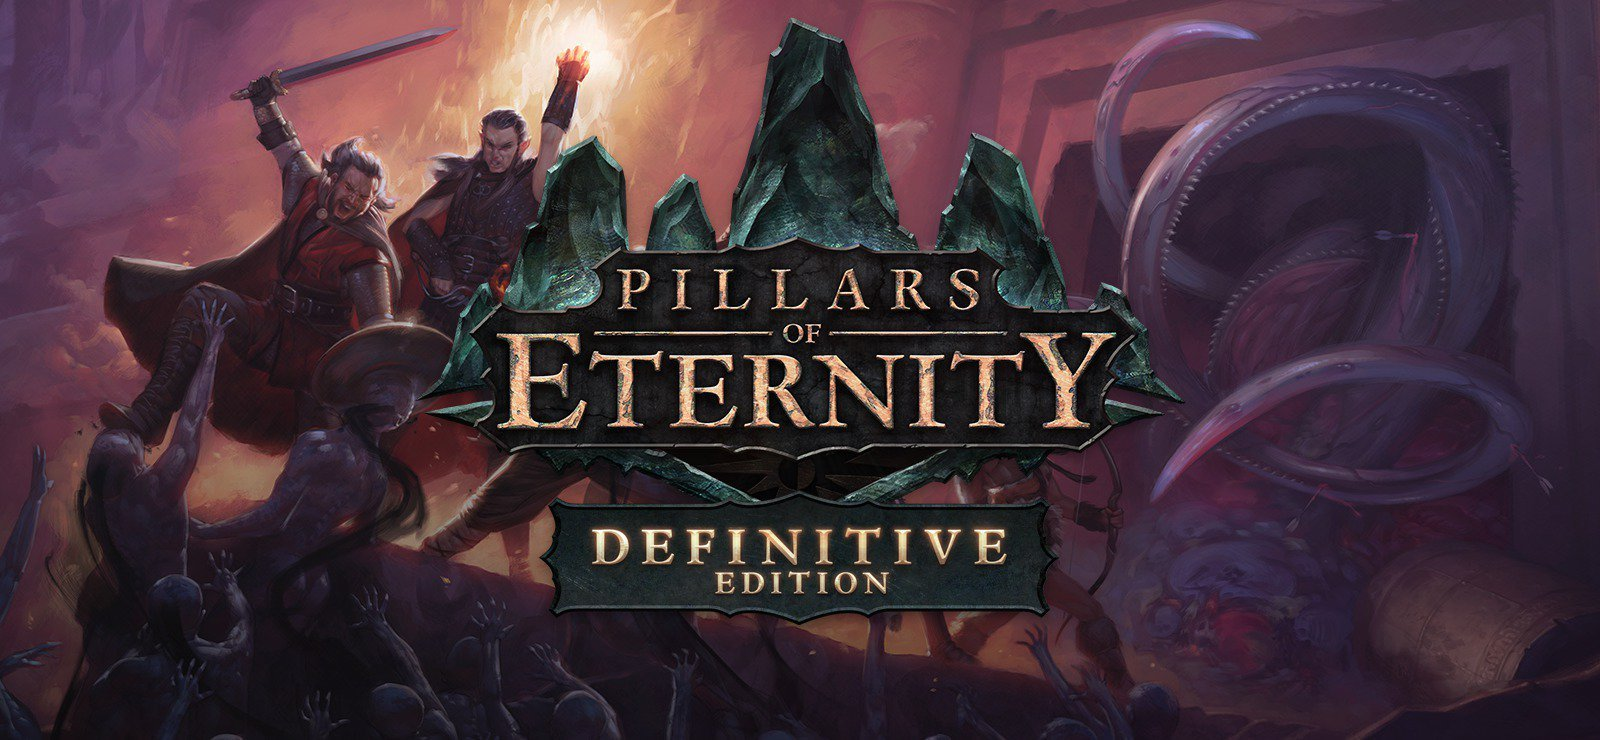 Pillars of Eternity Definitive Edition #GryNaWakacje